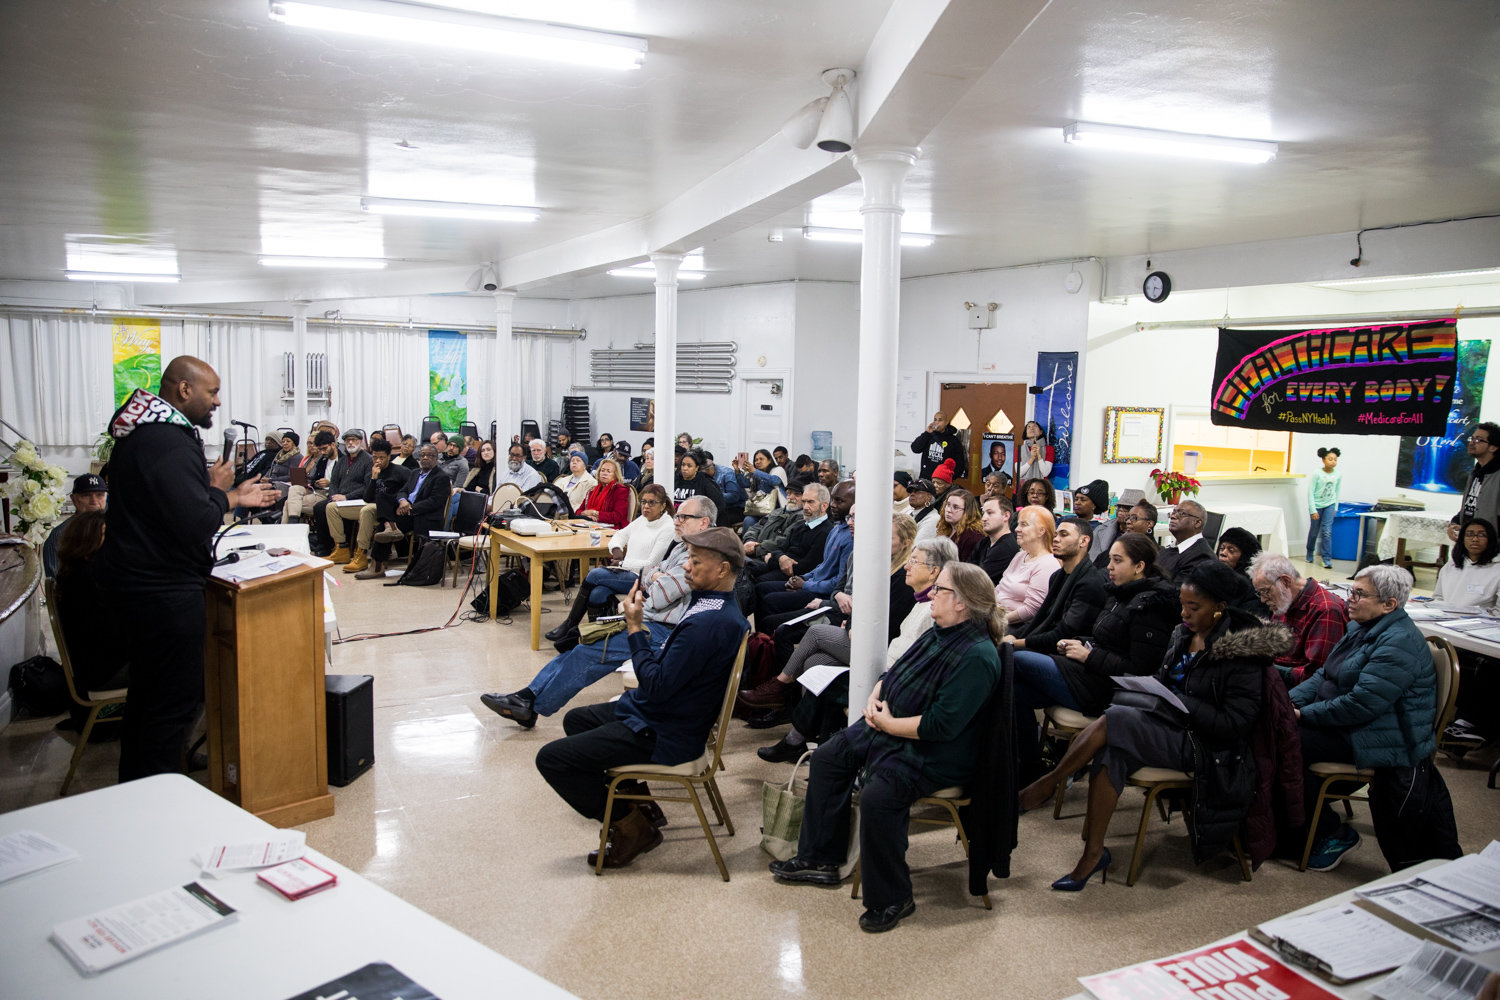 A panel discussion on mental health and police activity in communities of color filled the space at St. Stephen's United Methodist Church on Martin Luther King Jr. Day.